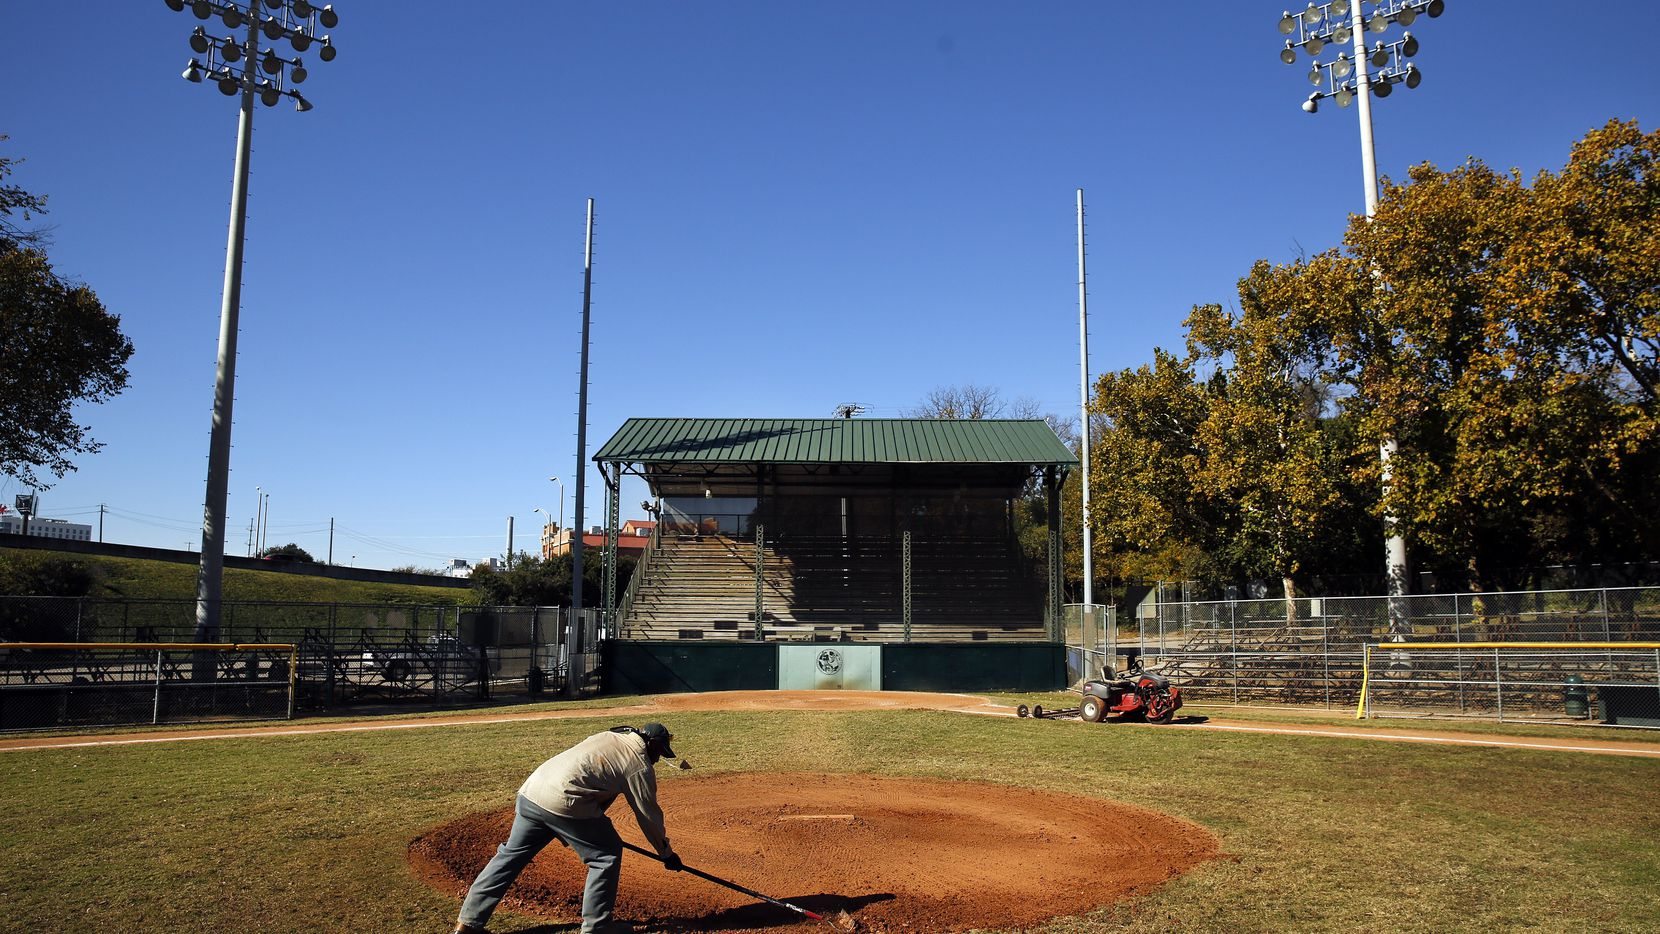 Lawrence Willie, a Dallas Park and Recreation Department employee, fixes holes in the pitching mound at the historic but dilapidated baseball field at Reverchon Park.